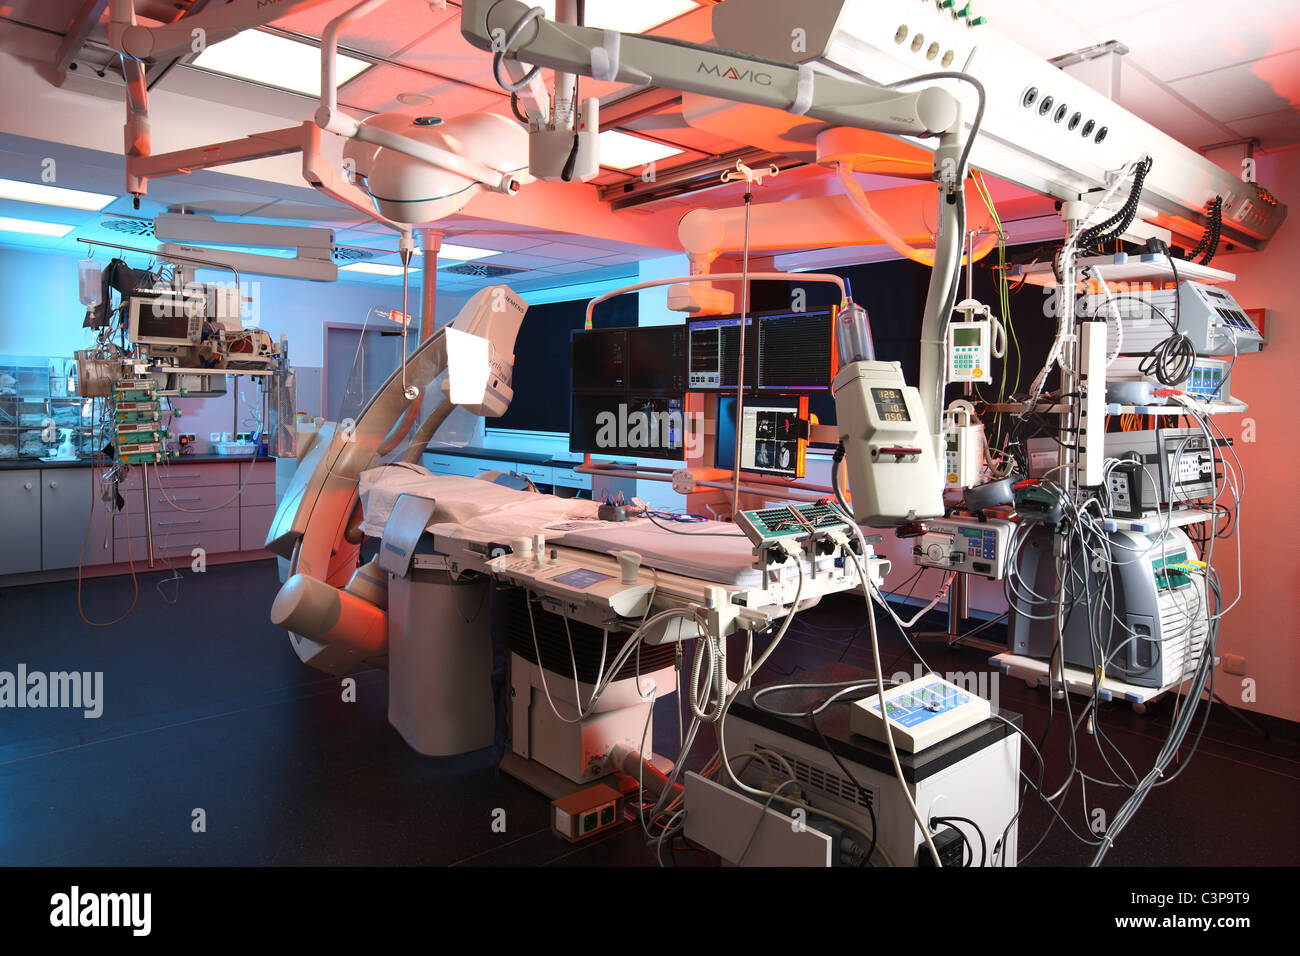 Hospital, Cardiac catheterization laboratory, (heart cath) is the insertion of a catheter into a chamber or vessel - Stock Image